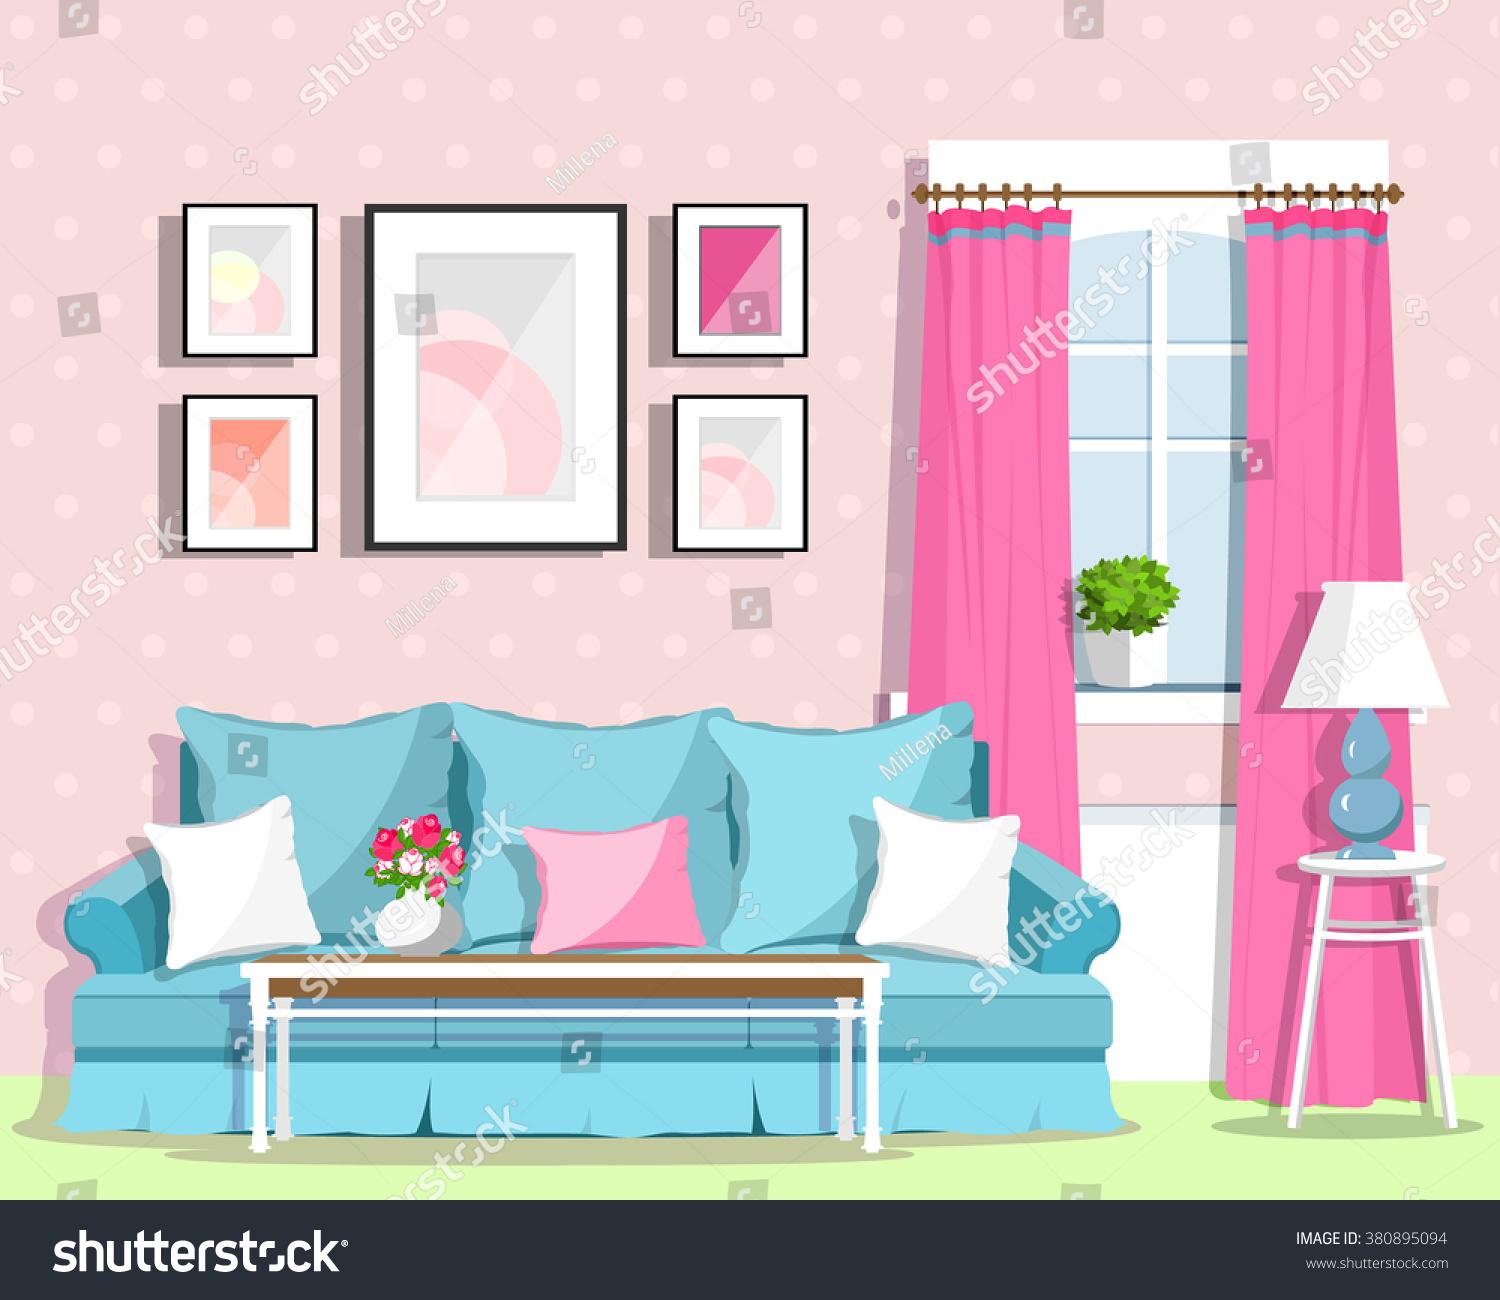 Cute Colorful Living Room Interior Design With Furniture. Retro Style.  Vector Illustration